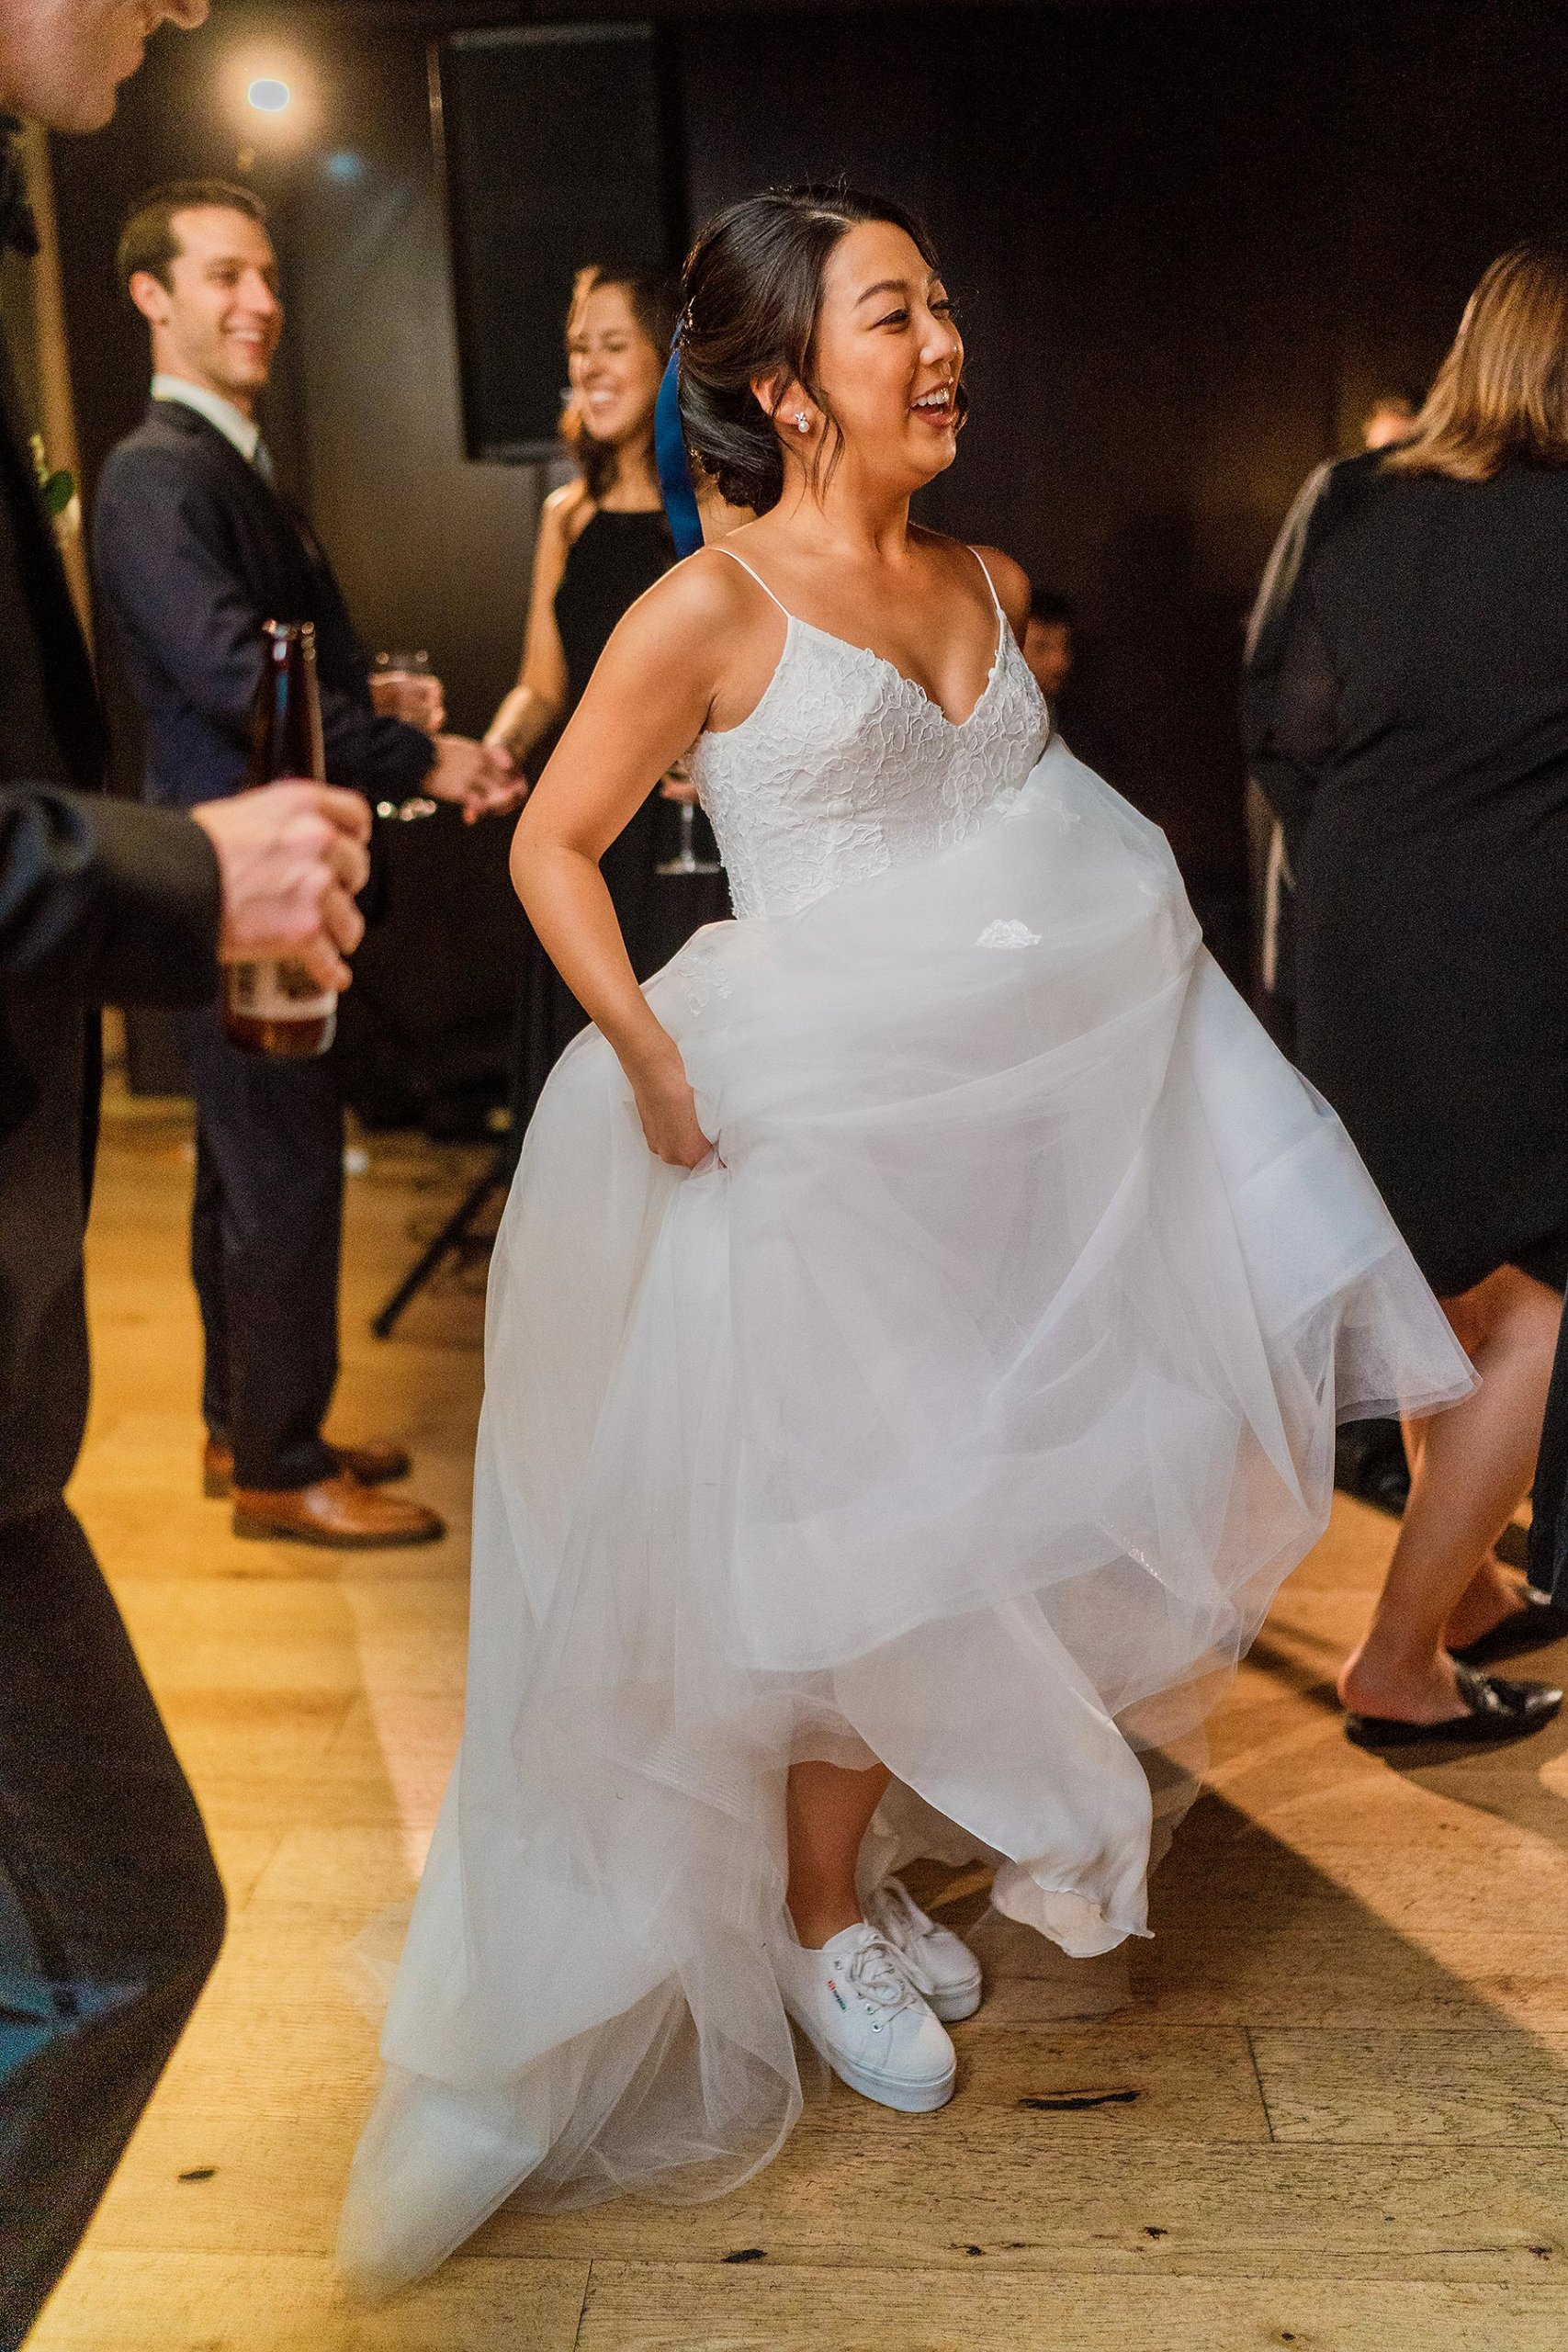 bride wearing keds or toms shoes and smiling at district winery wedding by Washington DC Wedding Photographer Adam Mason